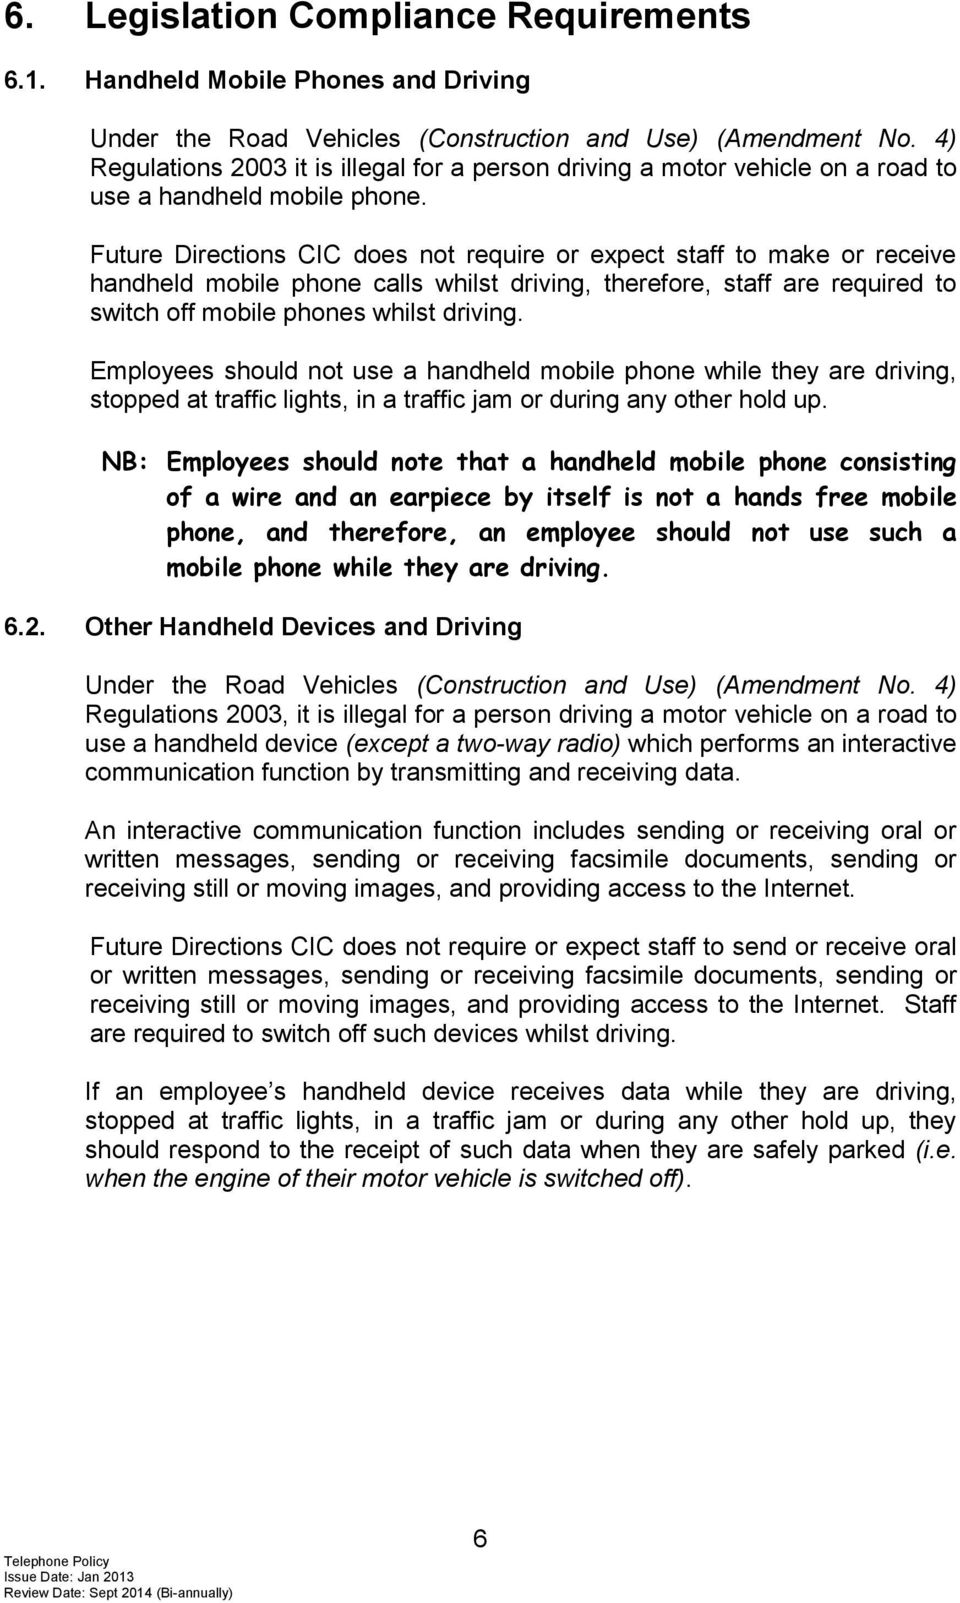 Future Directions CIC does not require or expect staff to make or receive handheld mobile phone calls whilst driving, therefore, staff are required to switch off mobile phones whilst driving.